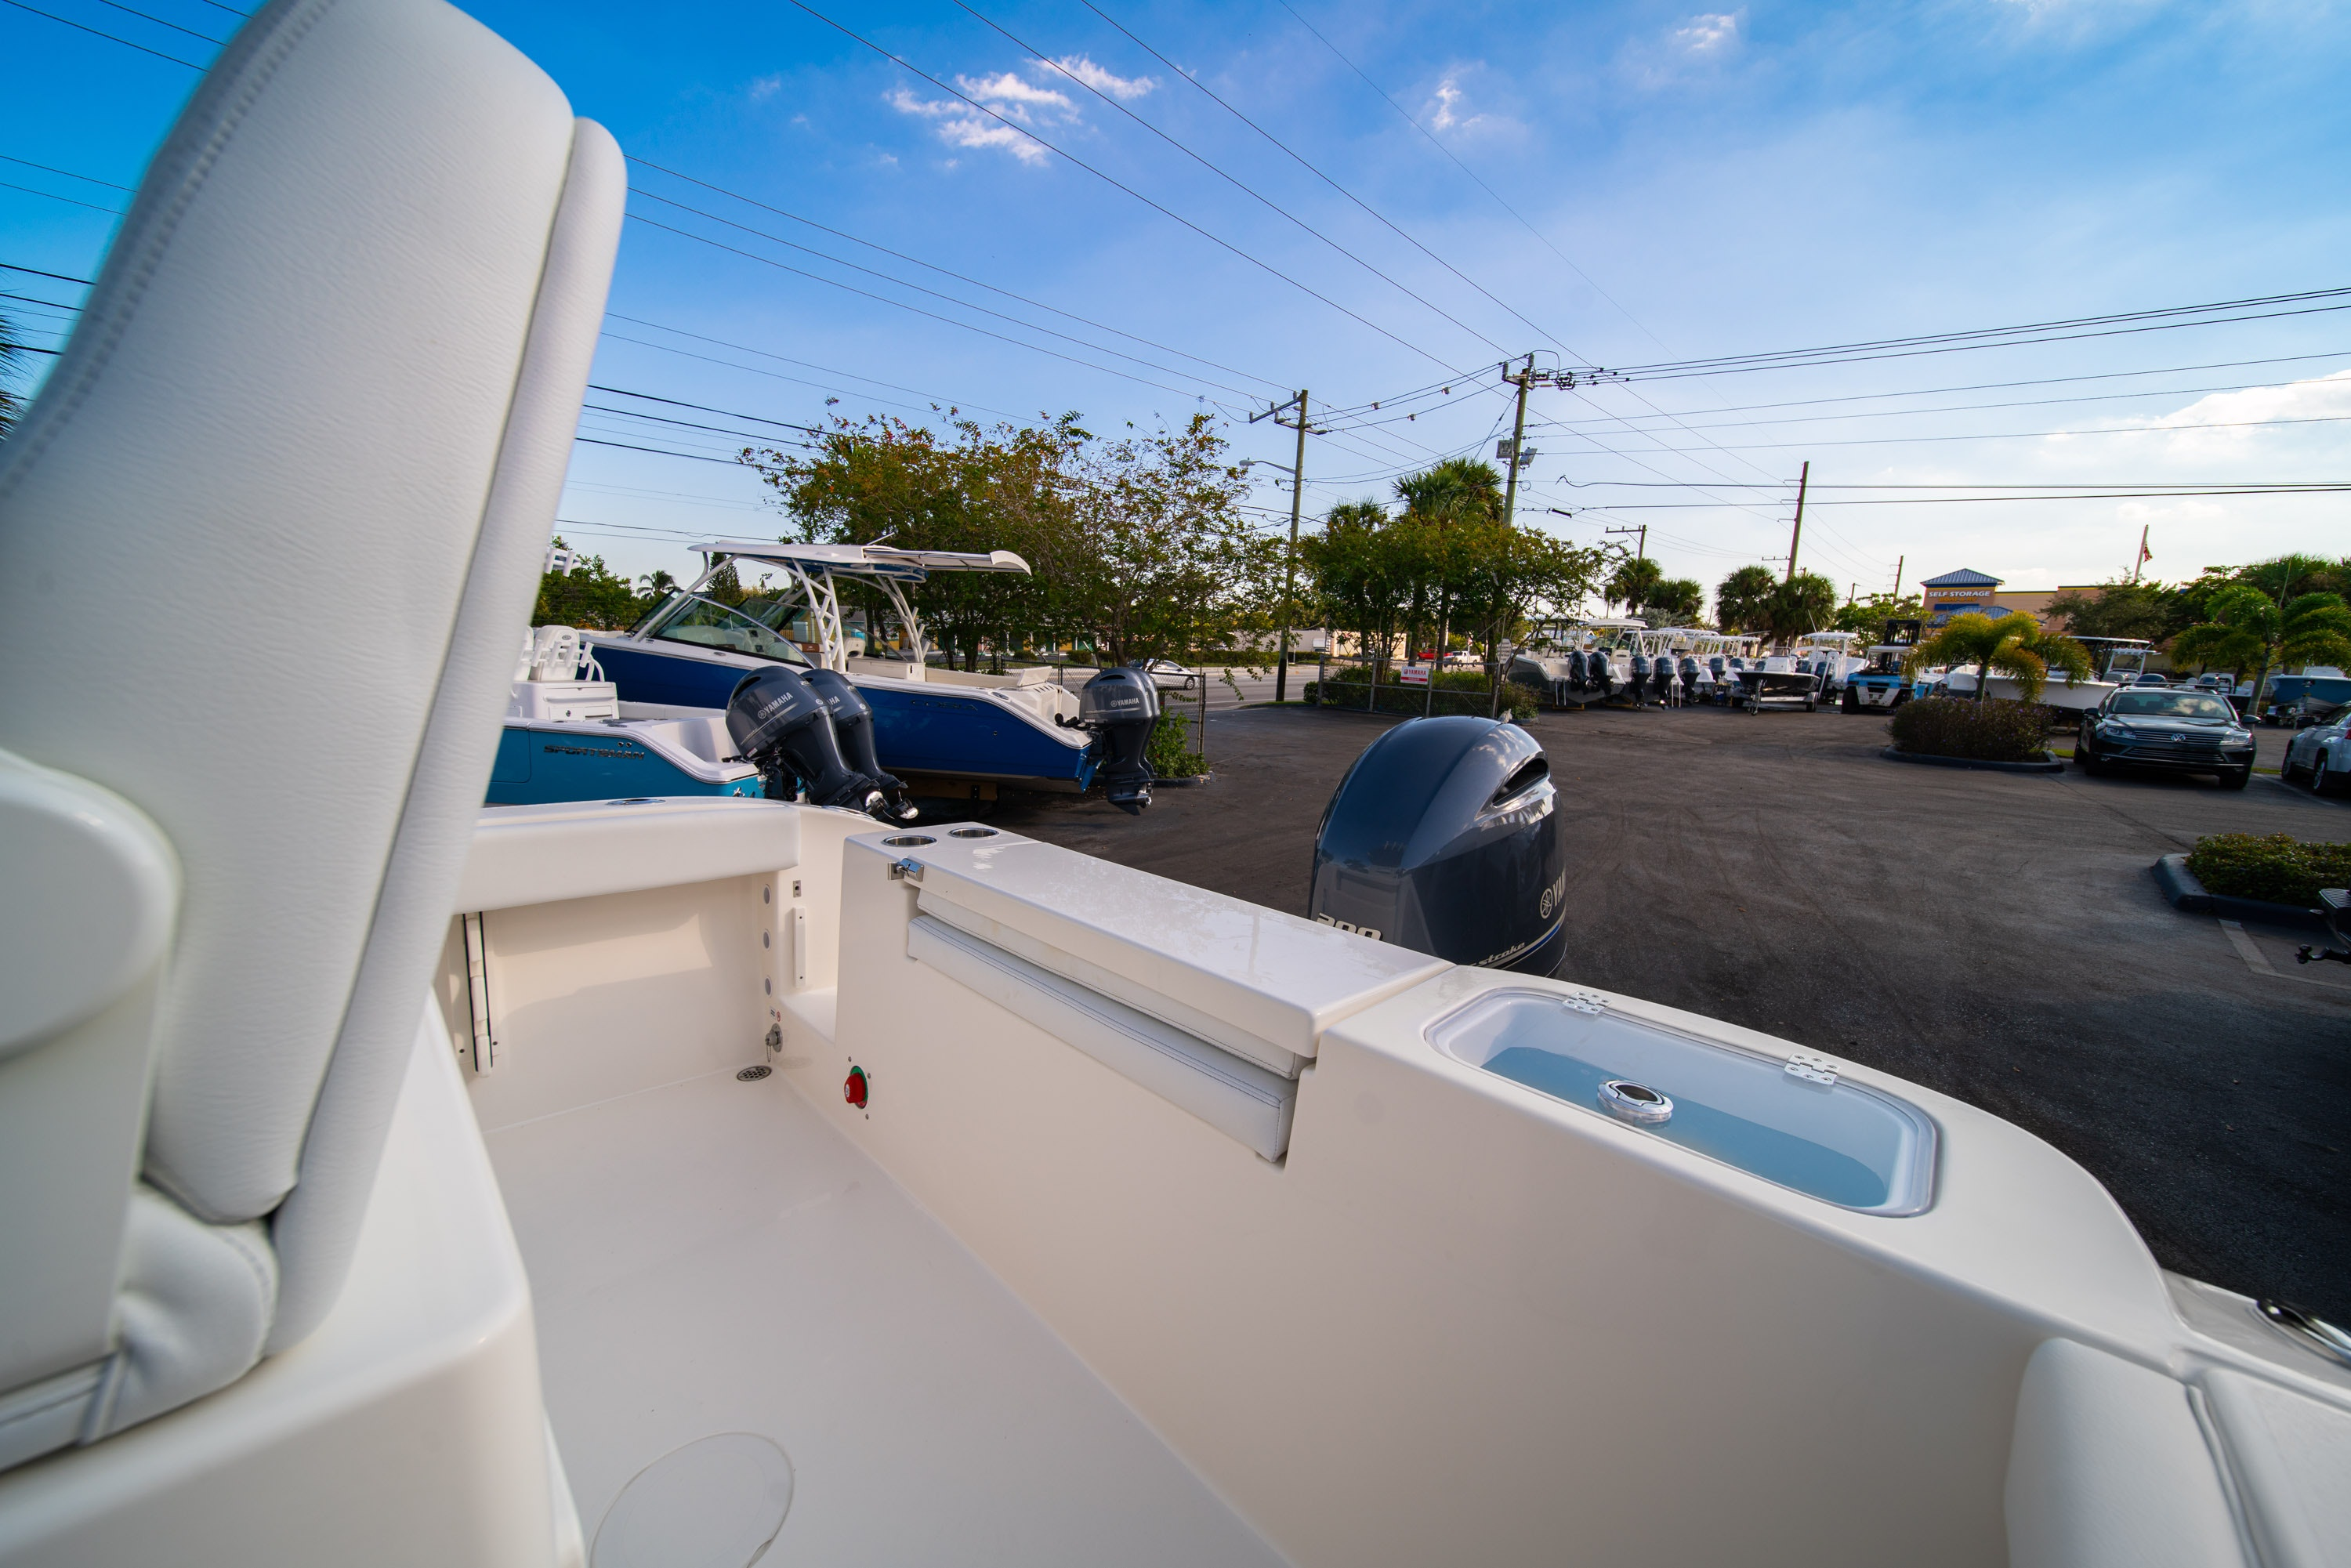 Thumbnail 11 for New 2020 Cobia 220 CC boat for sale in West Palm Beach, FL